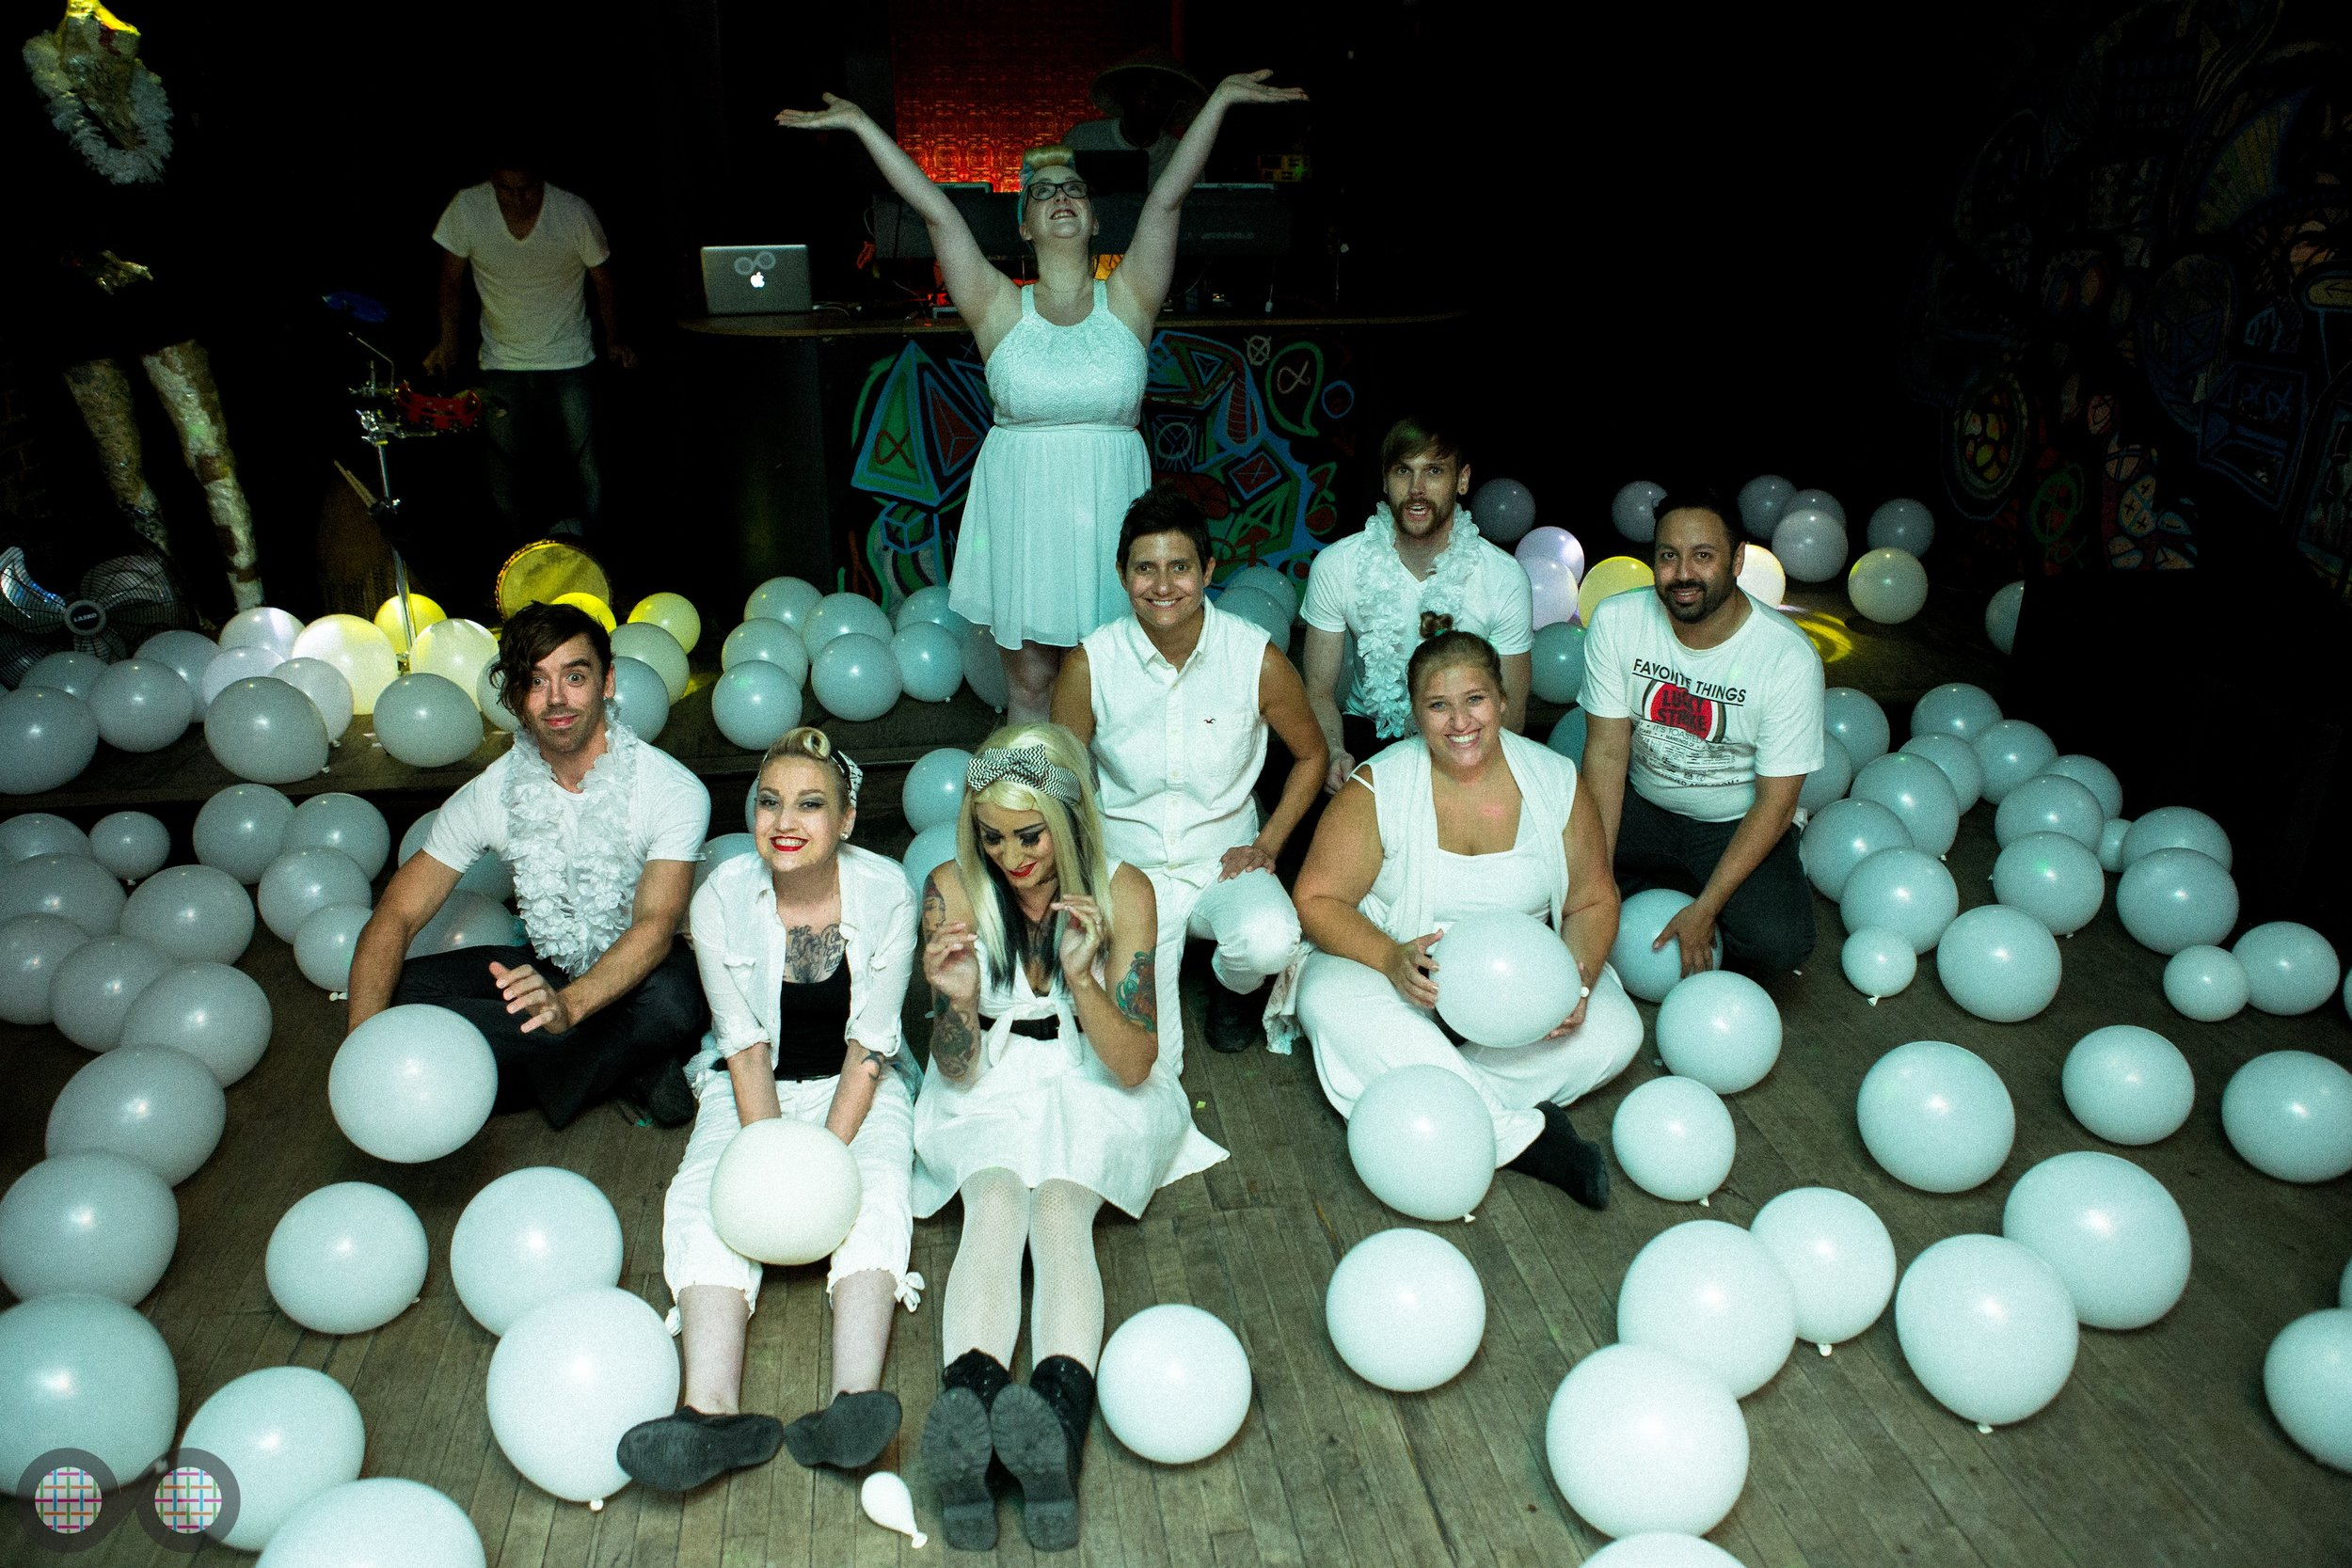 Whiteparty-0007.JPG